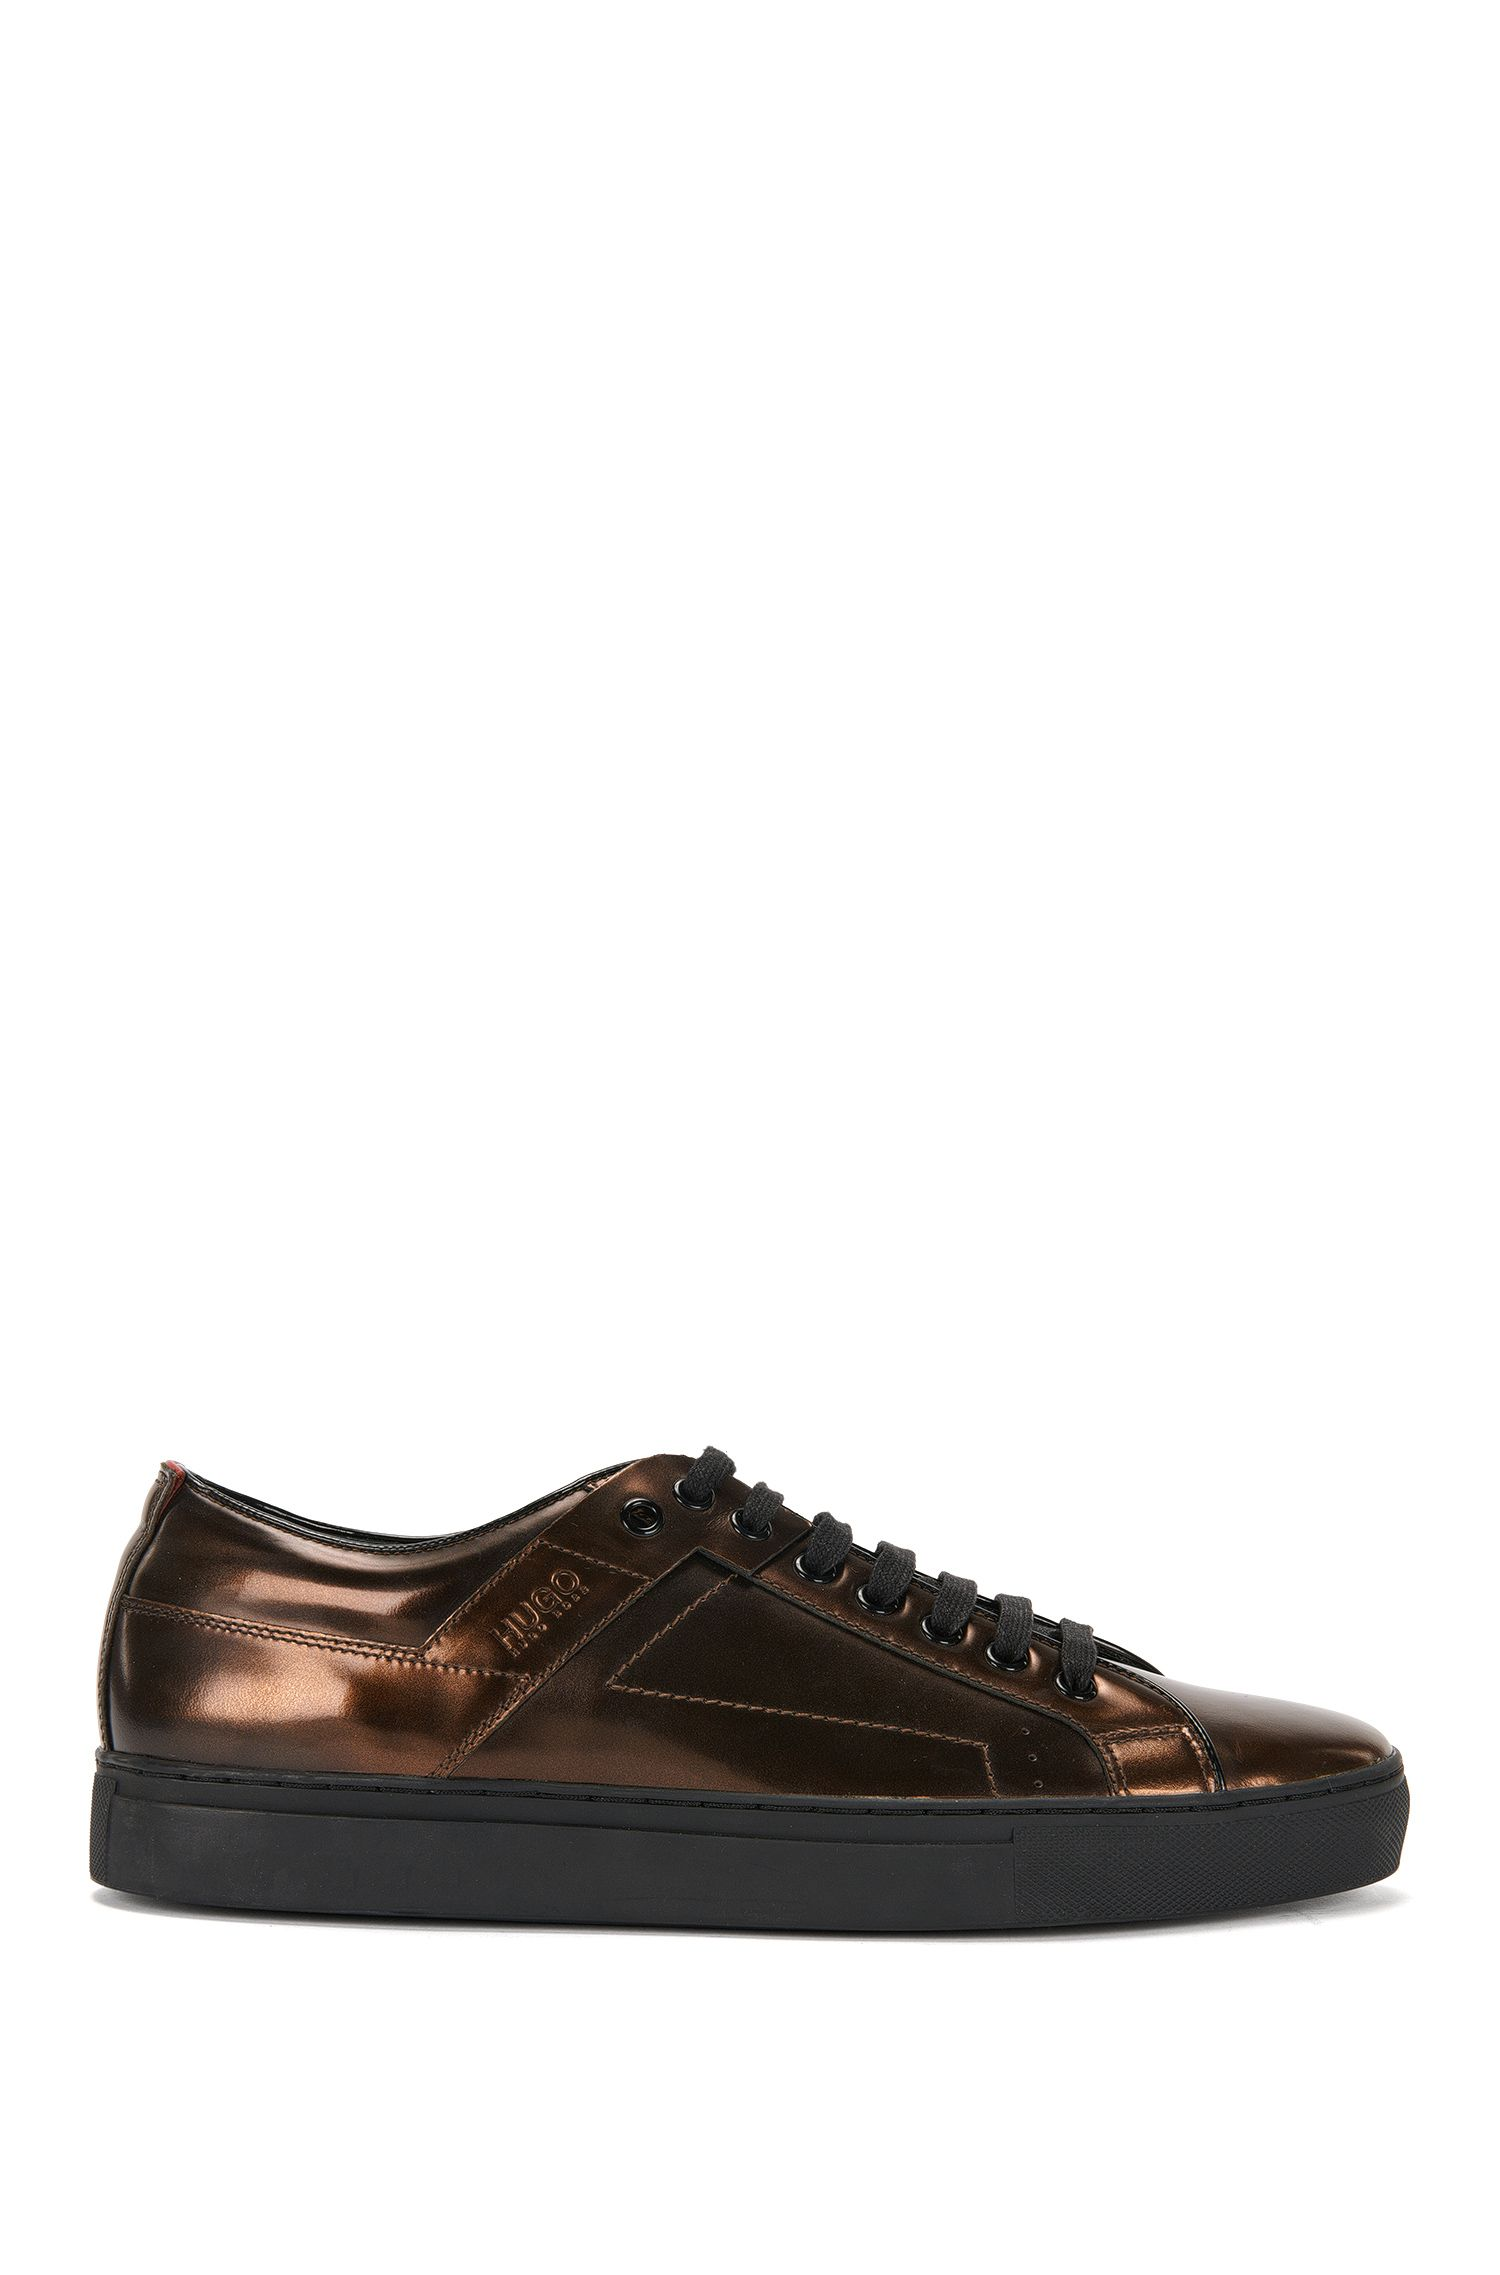 Leather trainers in metallic look: 'Futurism_Tenn_ltmt'